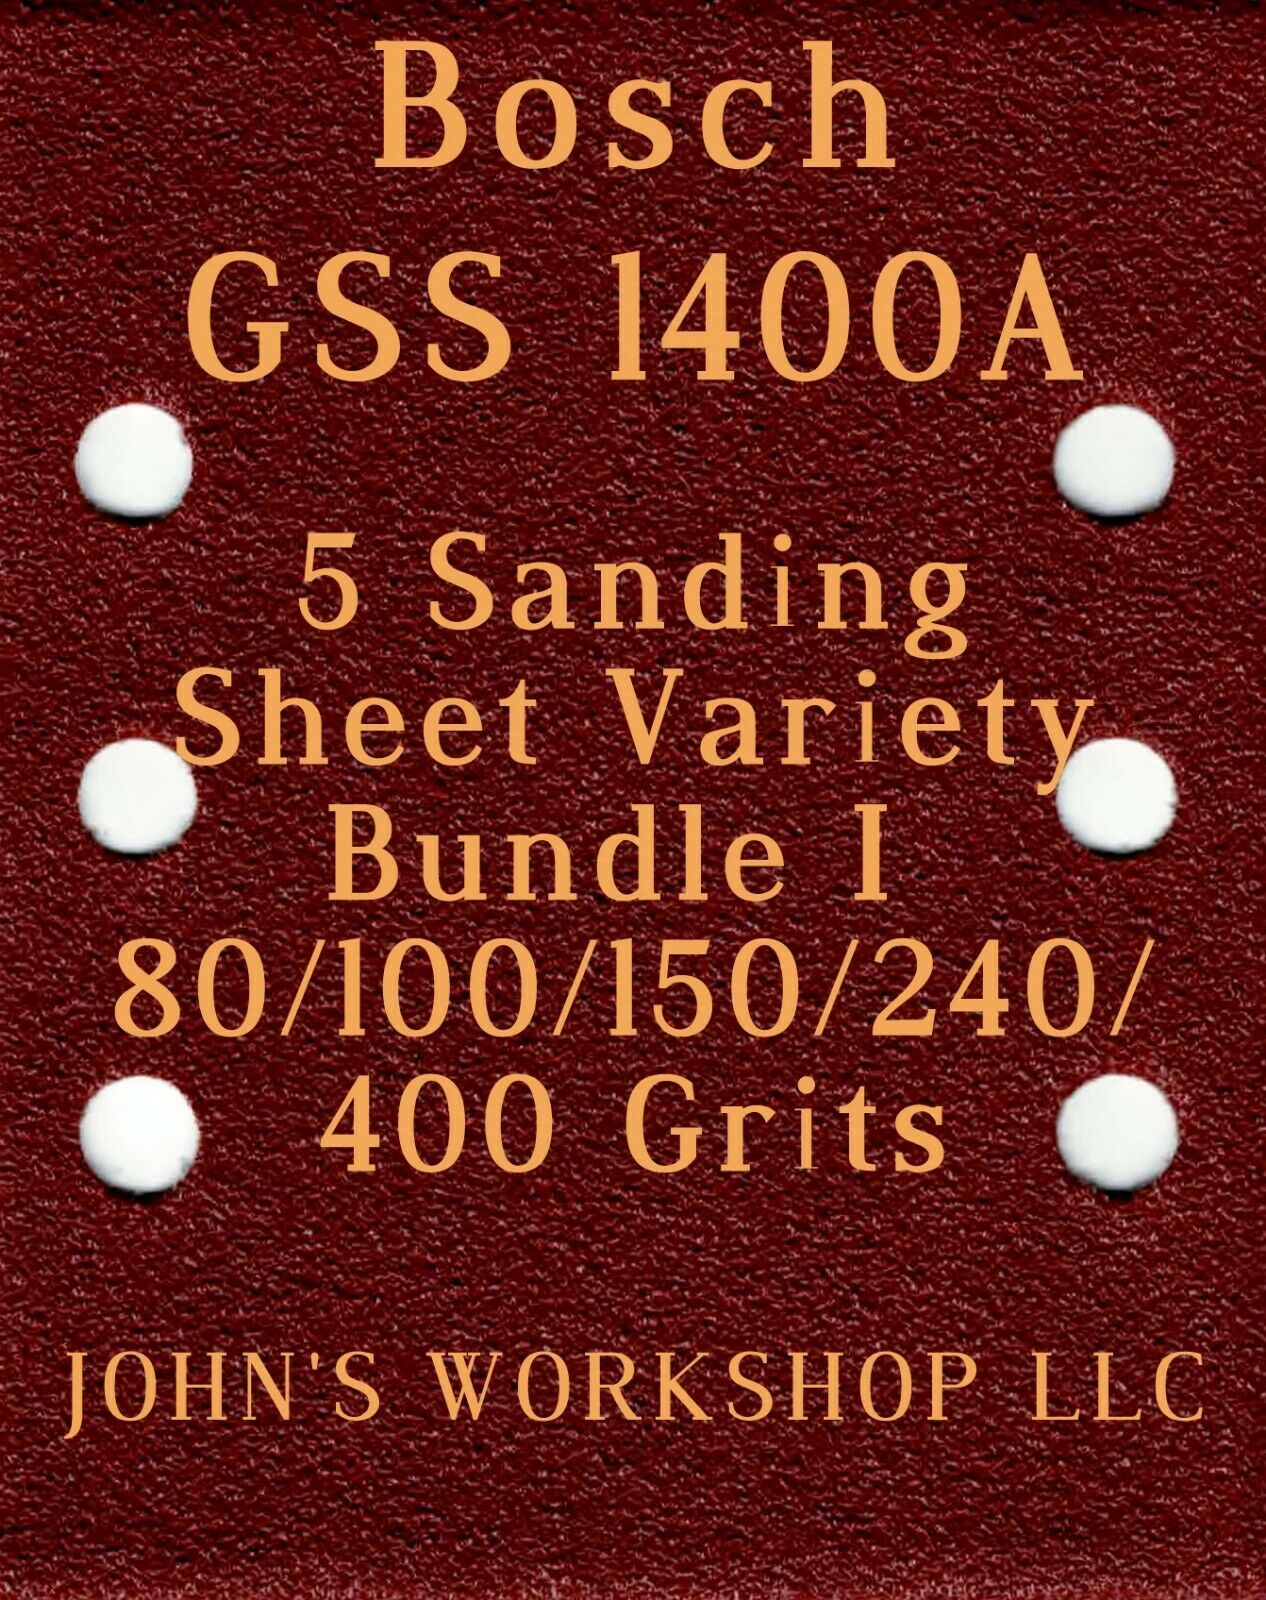 Primary image for Bosch GSS 1400A - 80/100/150/240/400 Grits - 5 Sandpaper Variety Bundle I